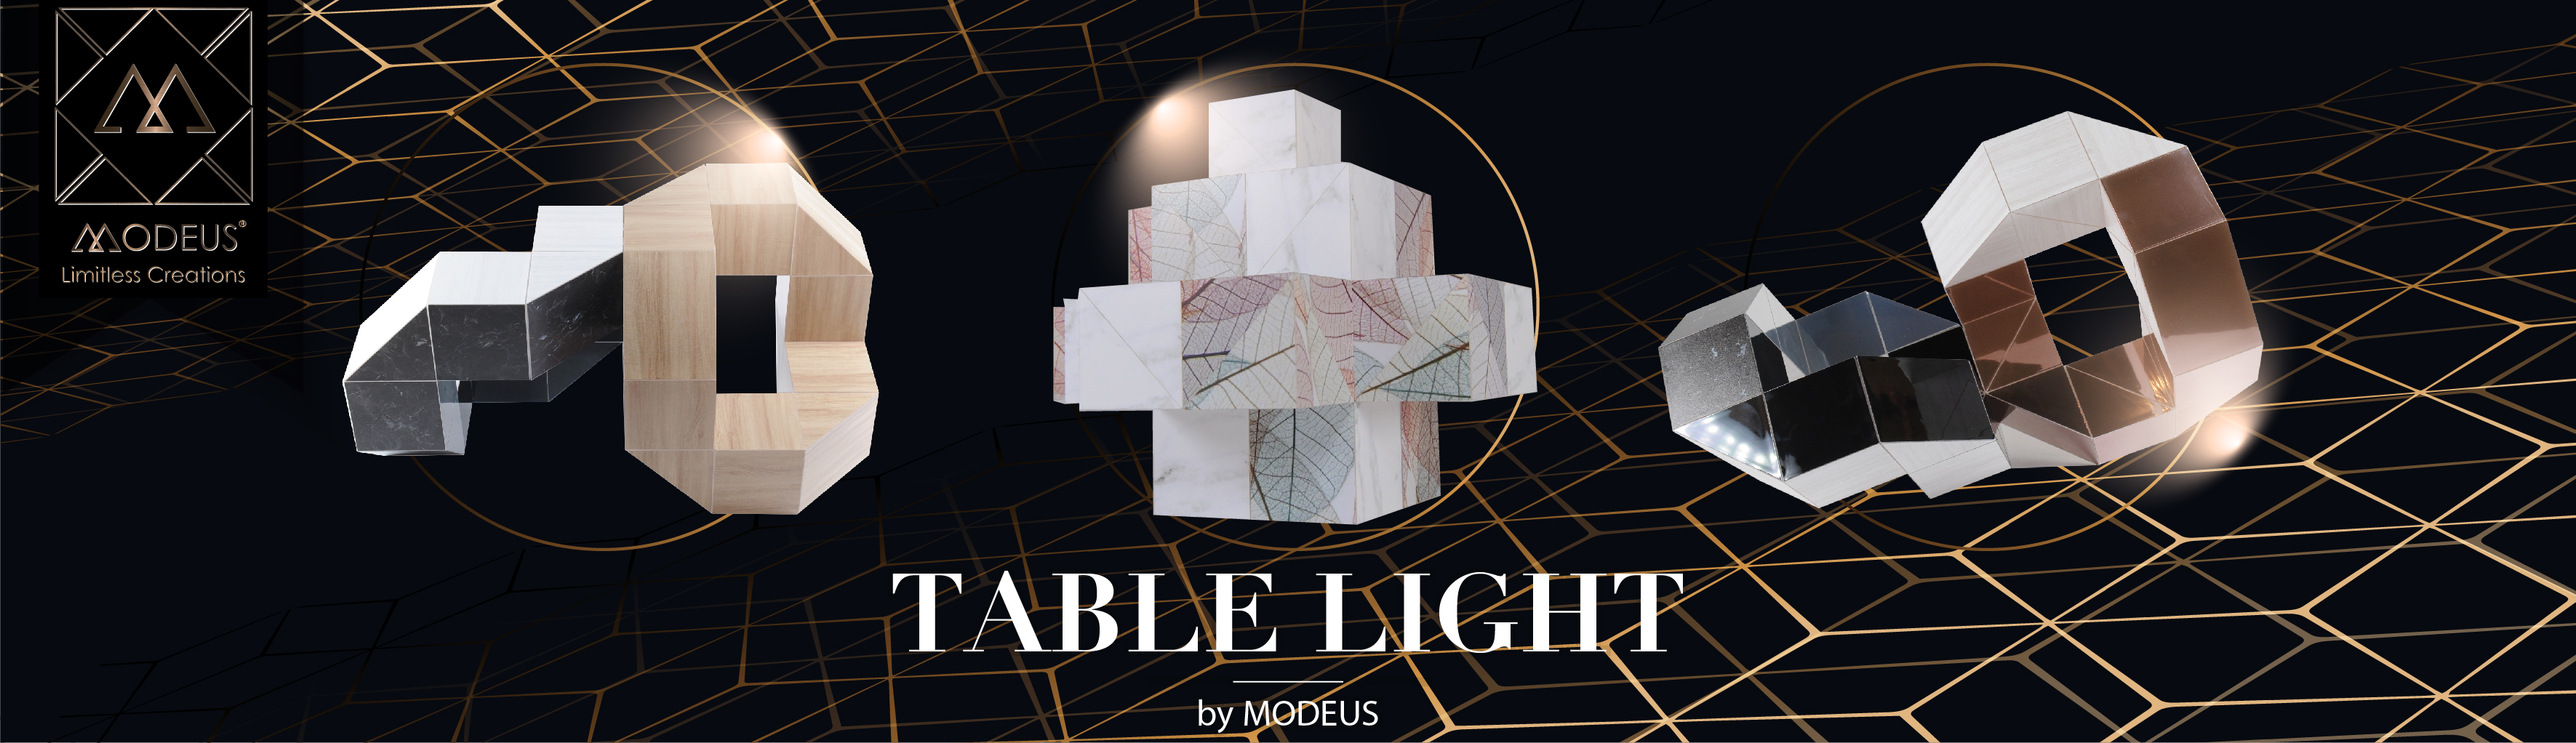 Table Light